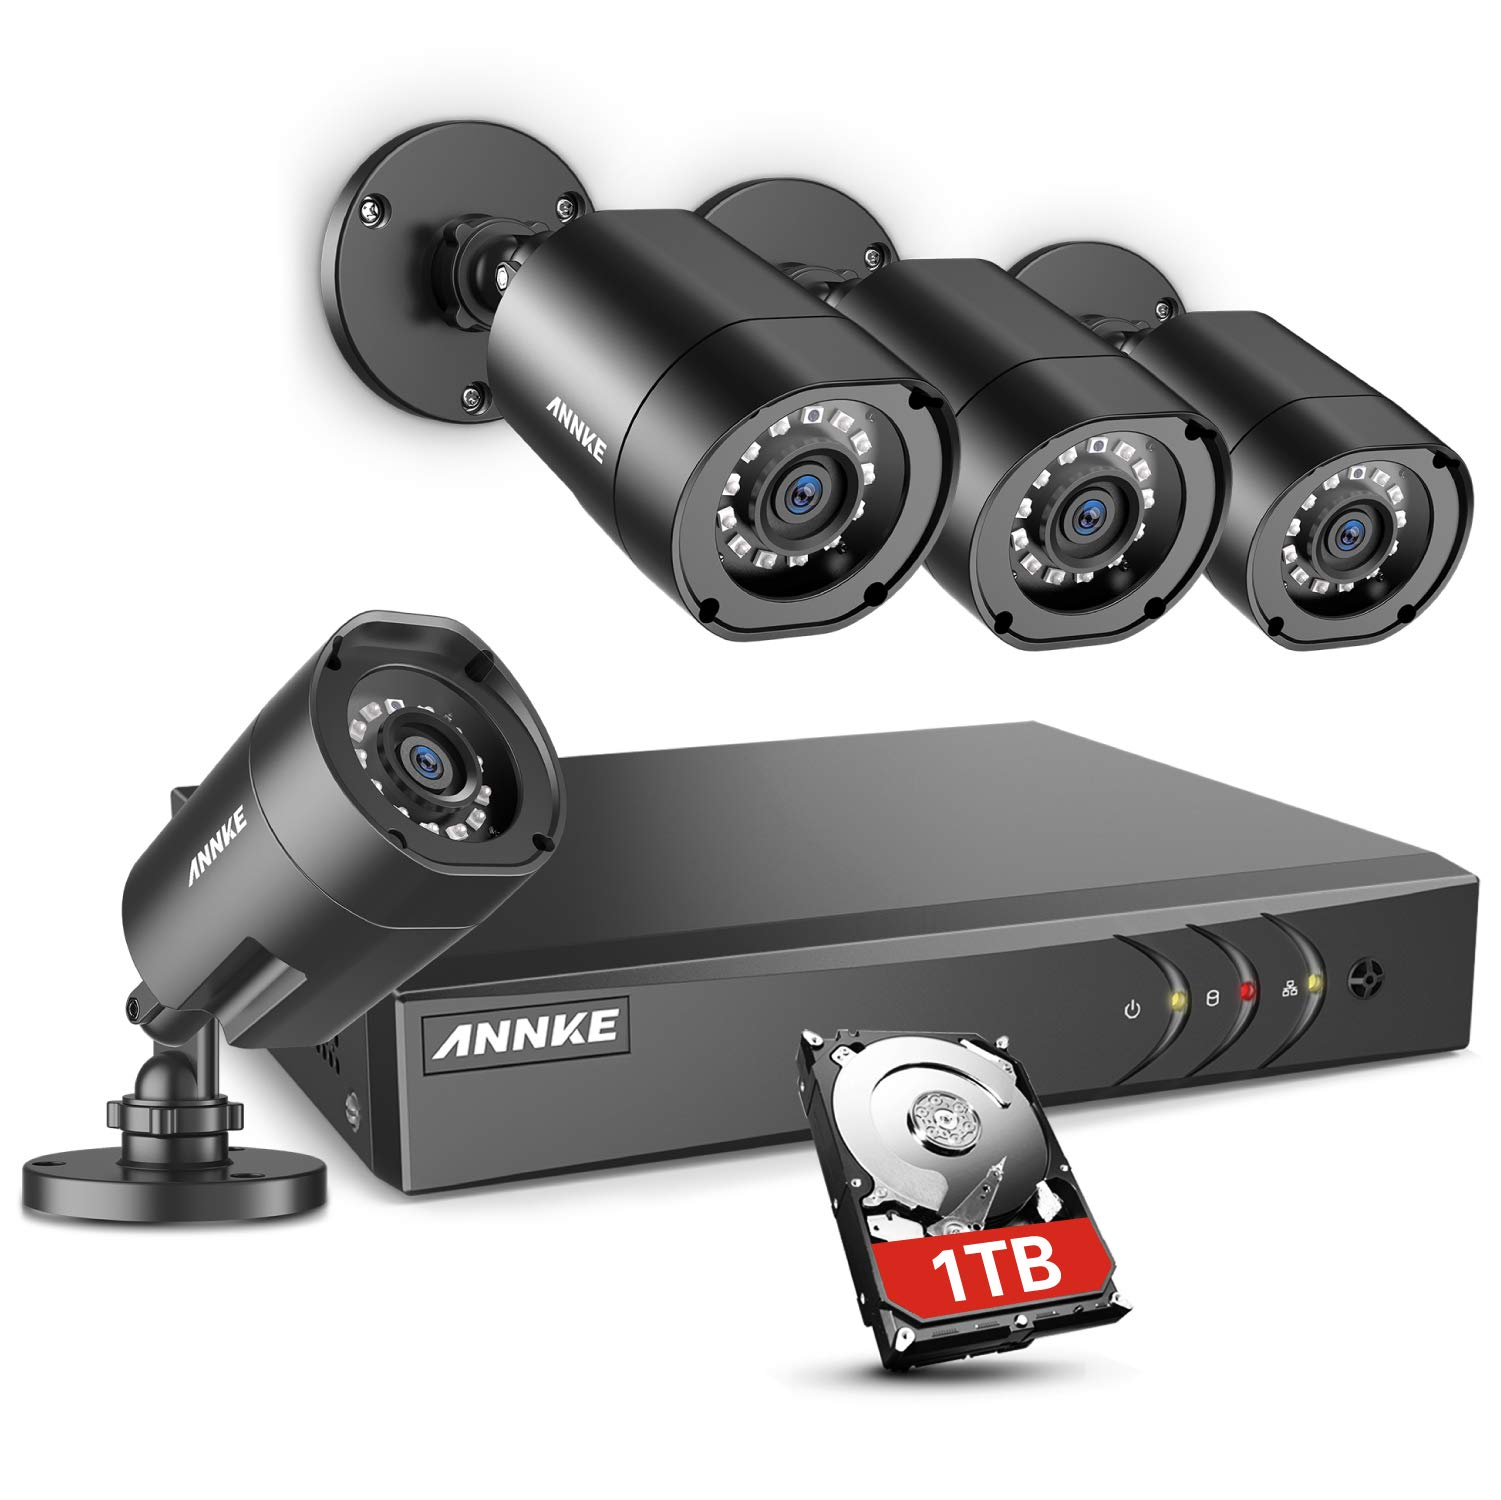 ANNKE 8CH H.264+Security Camera System with 1TB Hard Drive, 4pcs 1080P 1920TVL Wired CCTV Cameras, IP66 Weatherproof for Indoor Outdoor use, Motion Alert Remote Access by ANNKE